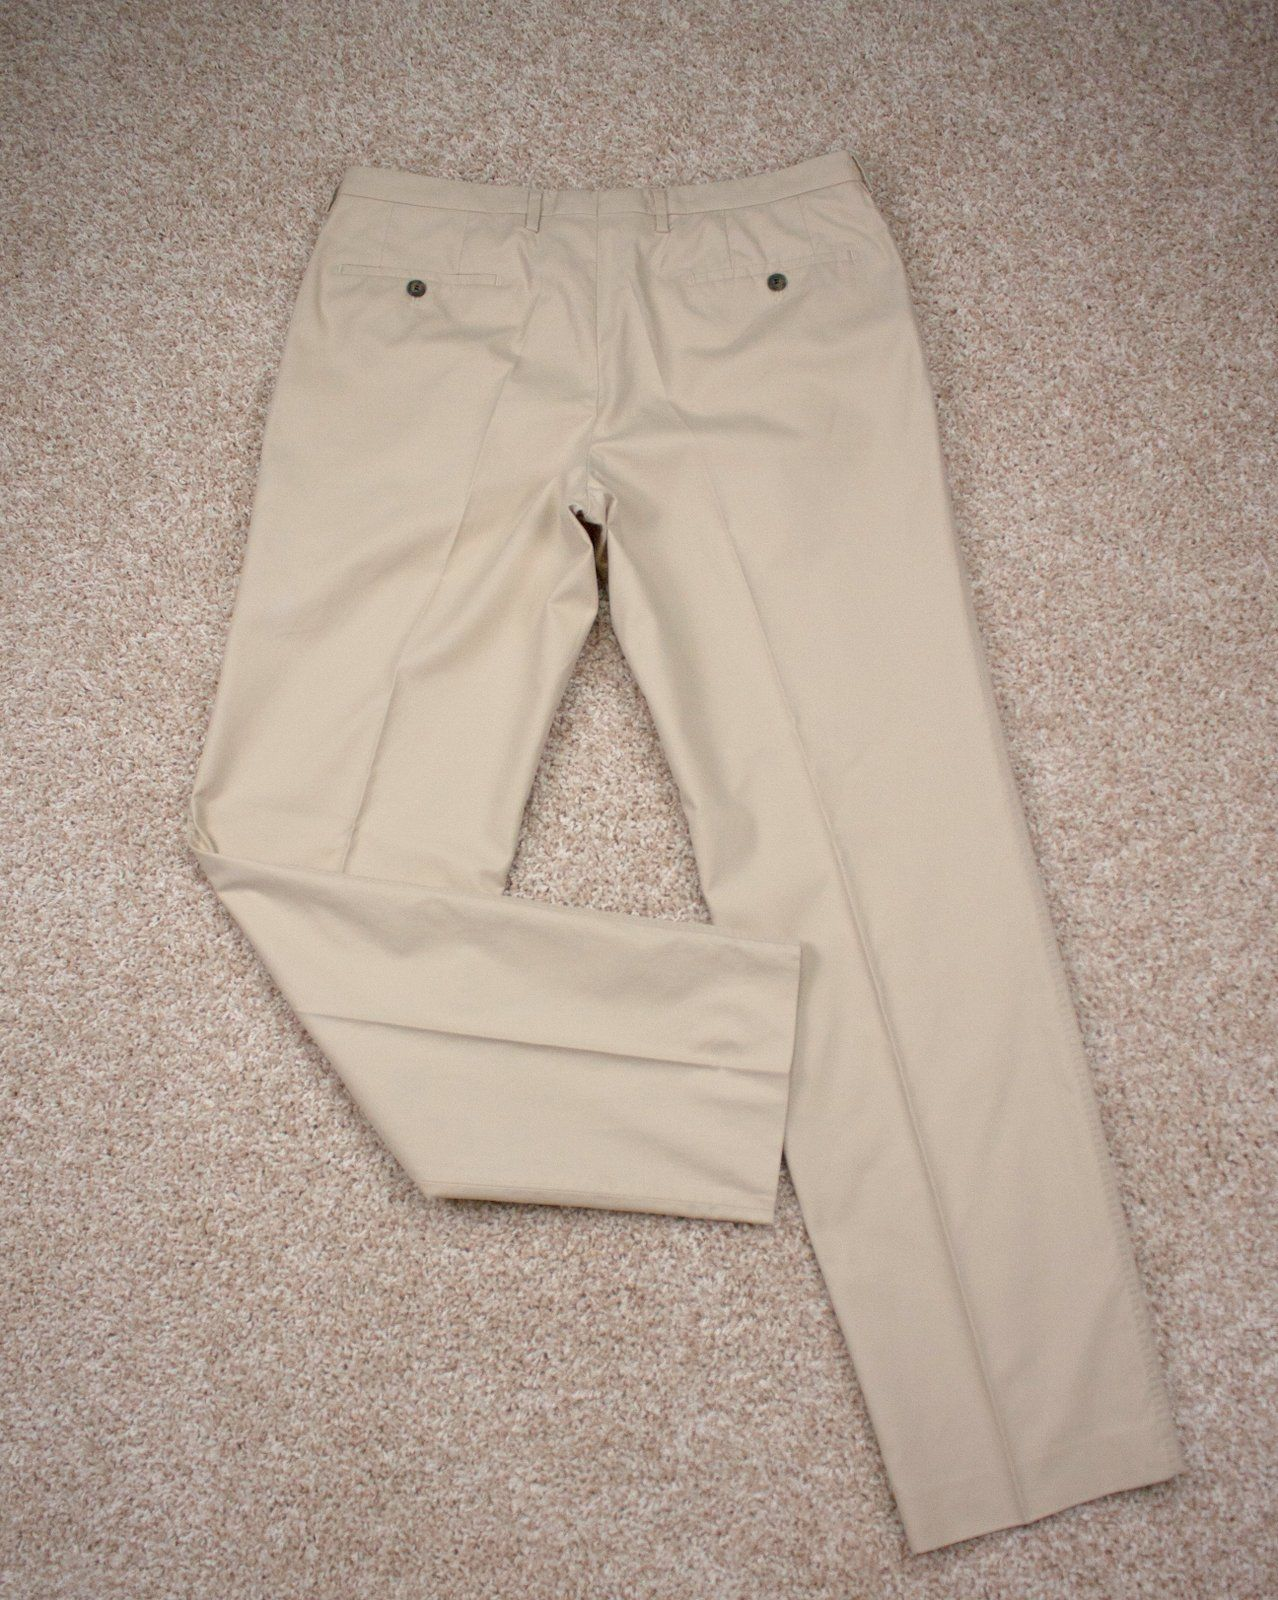 HUGO BOSS men's khaki flat front pants,  US 36R/EU 52 - secondfirst